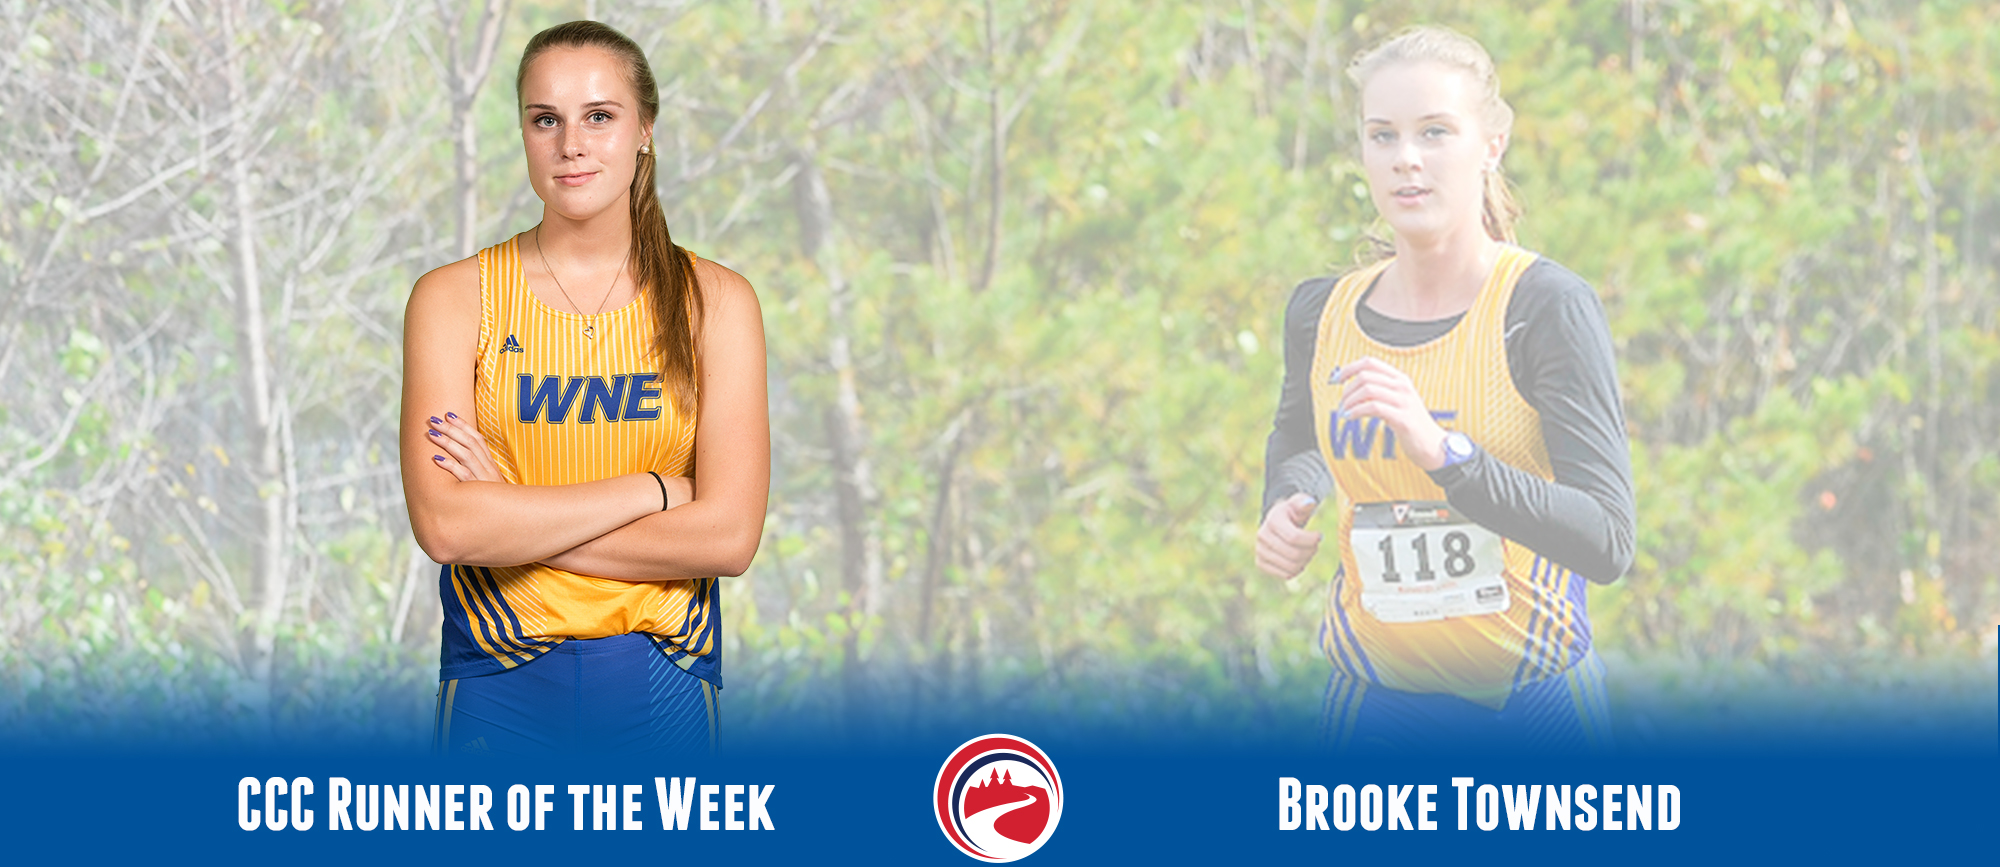 Brooke Townsend Named CCC Runner of the Week